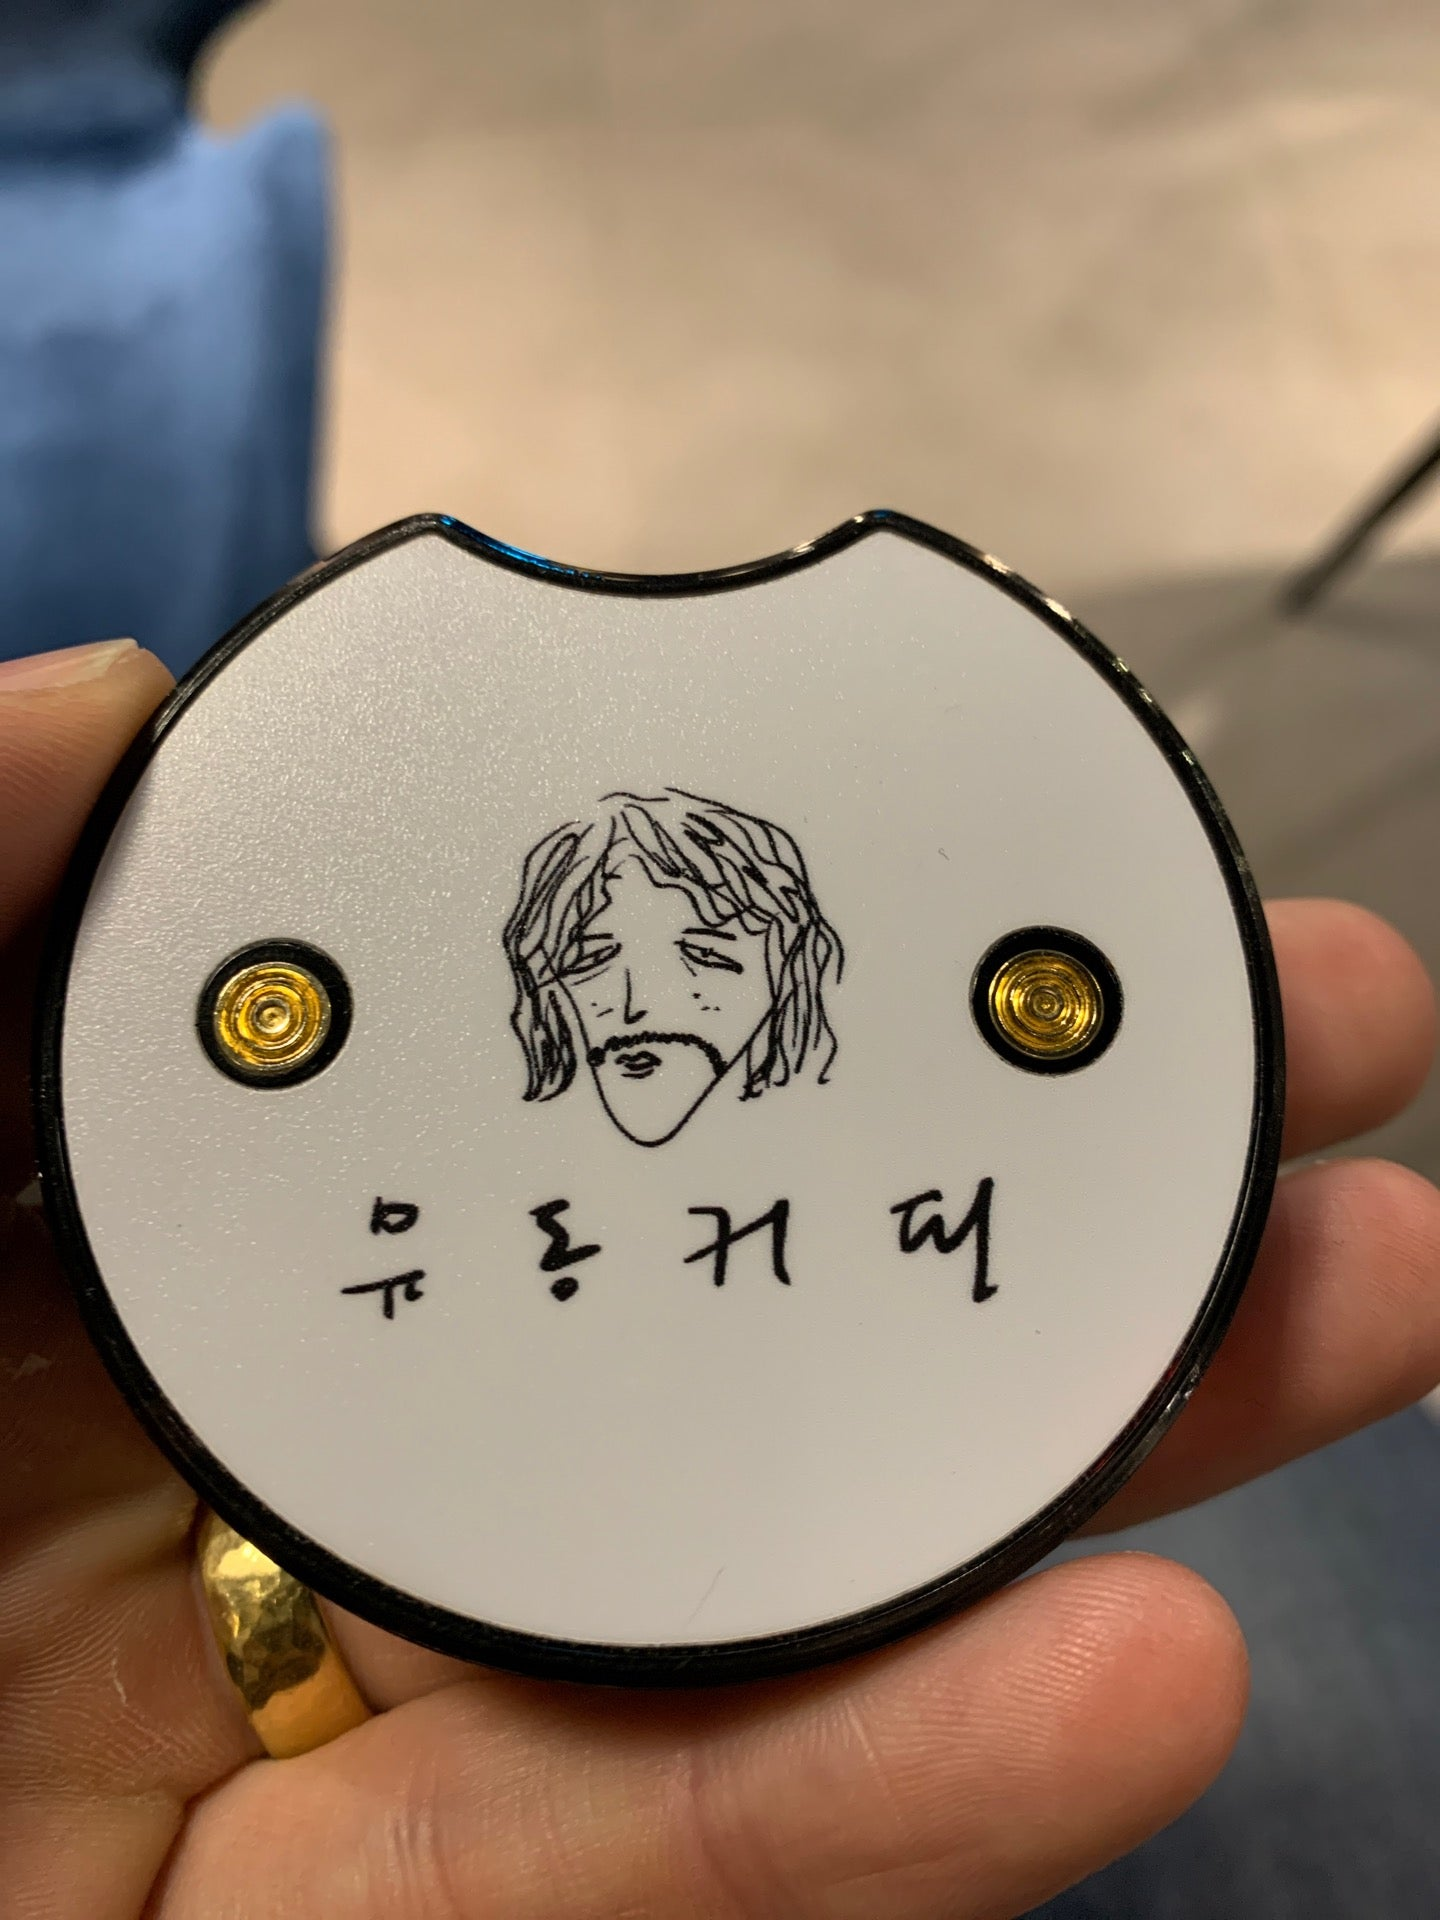 Checked in at 유동커피남포점